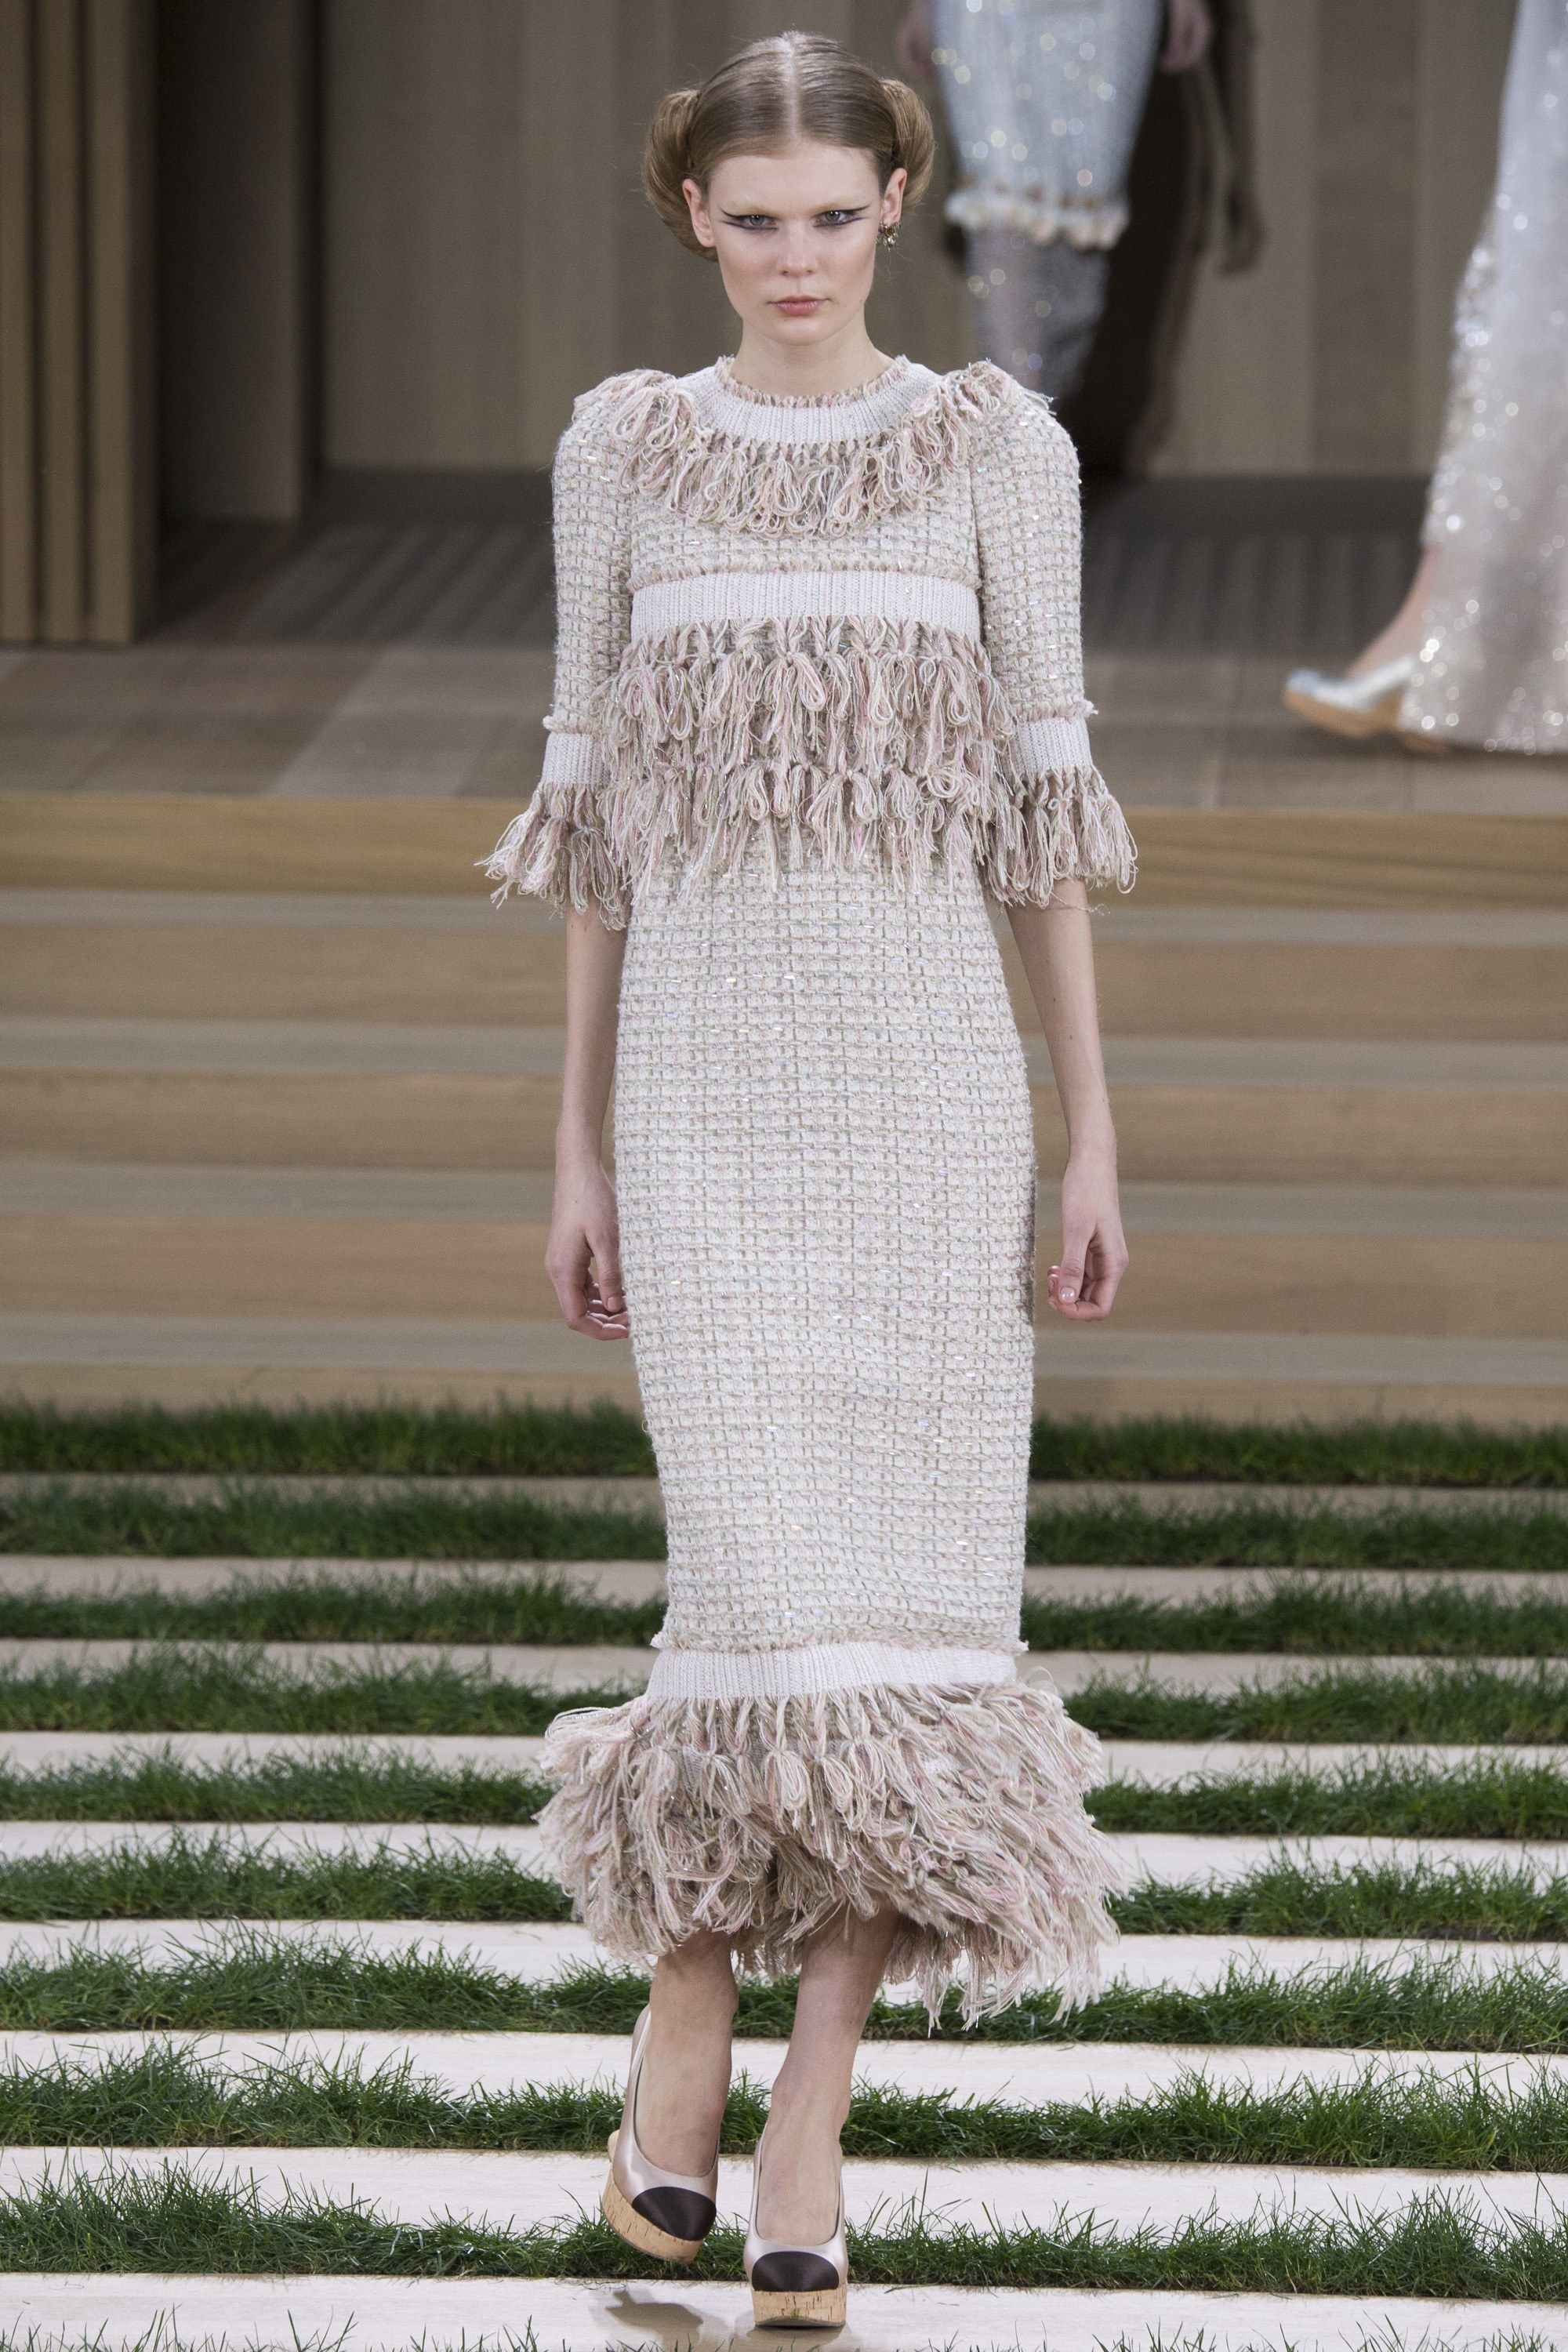 Chanel Spring 2016 Couture Fashion Show | Chanel spring 2016 ...